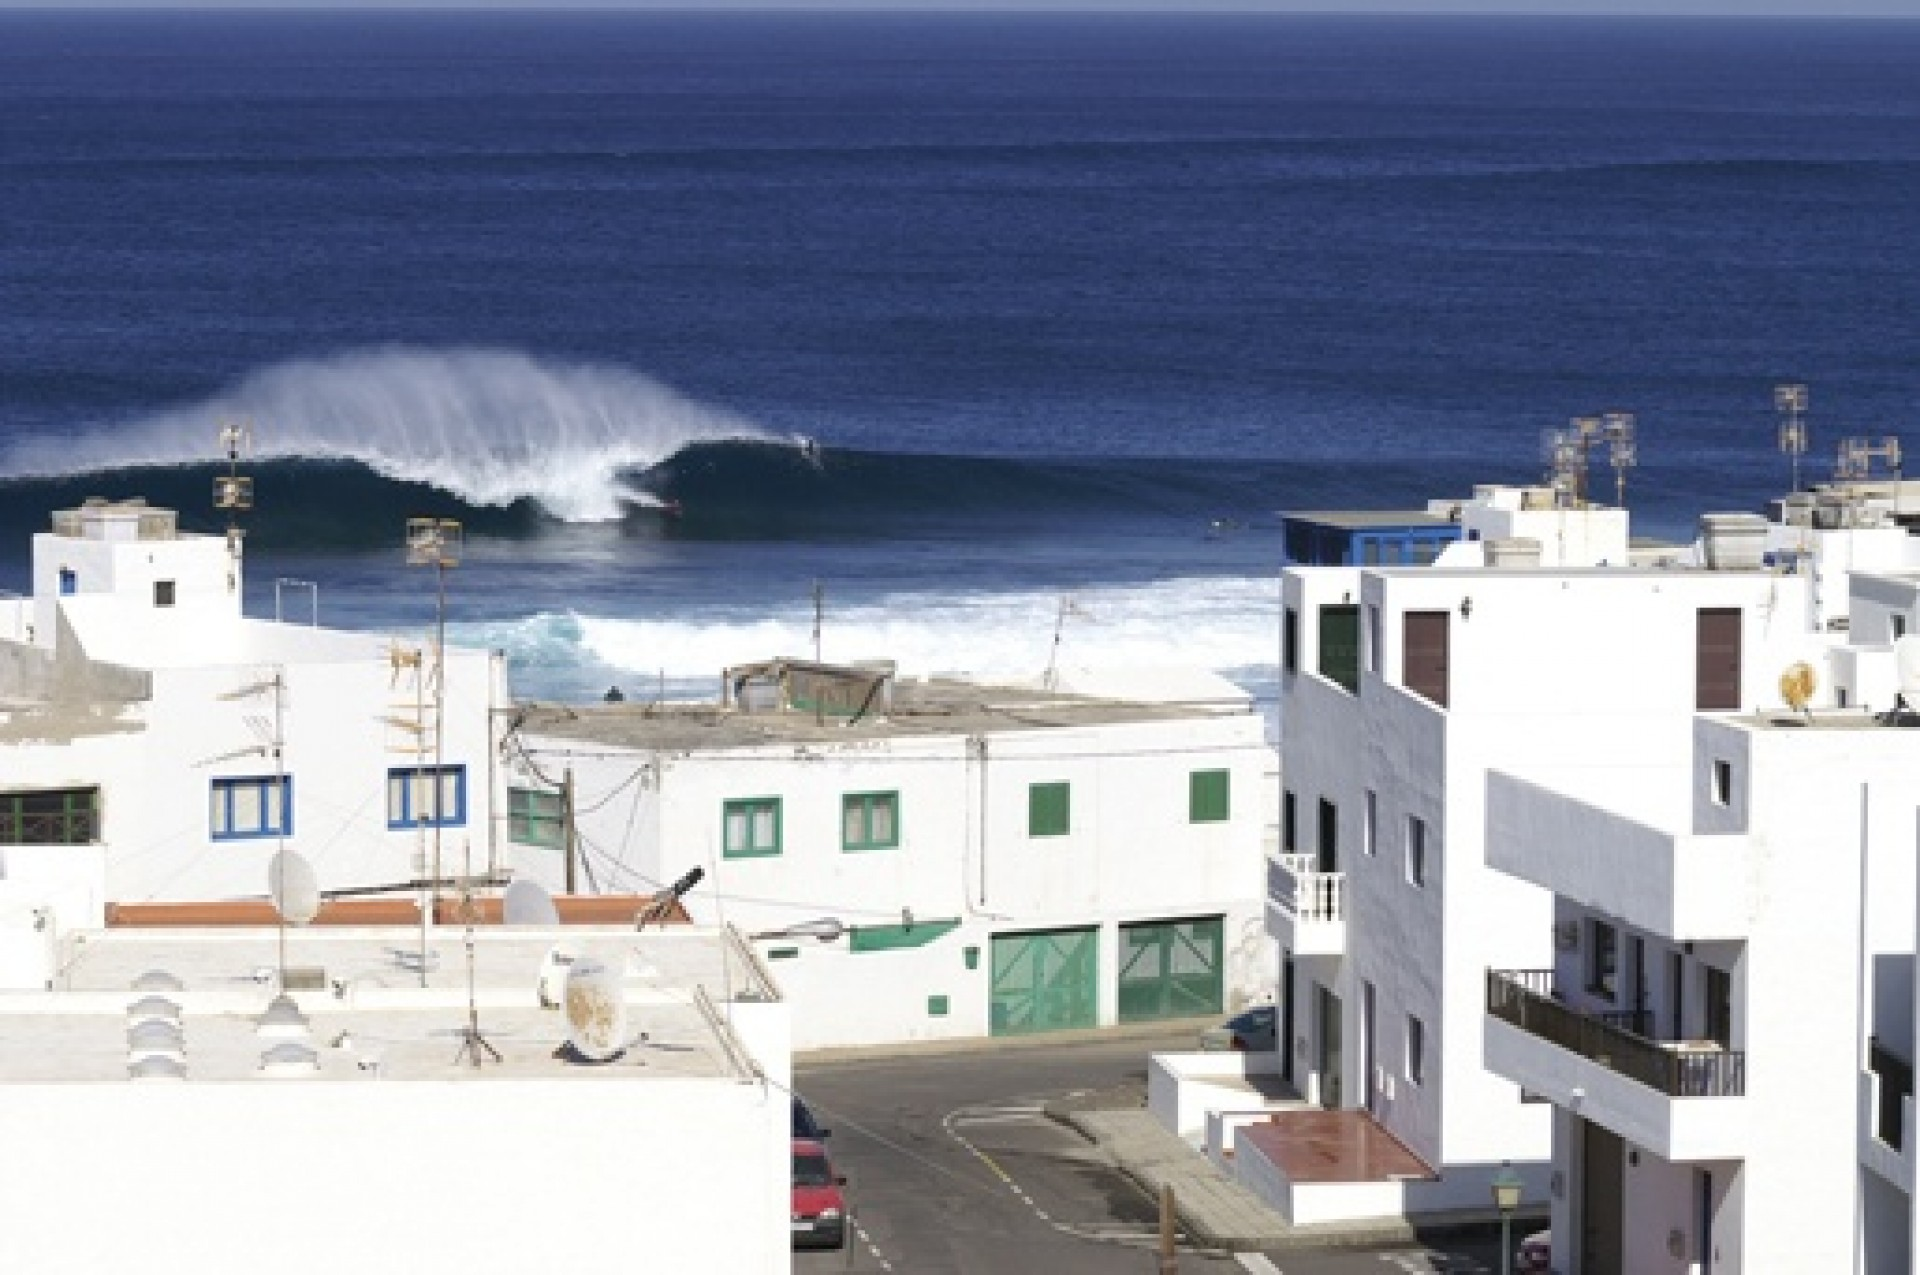 Cedric de Barros's photo of Morro Negro